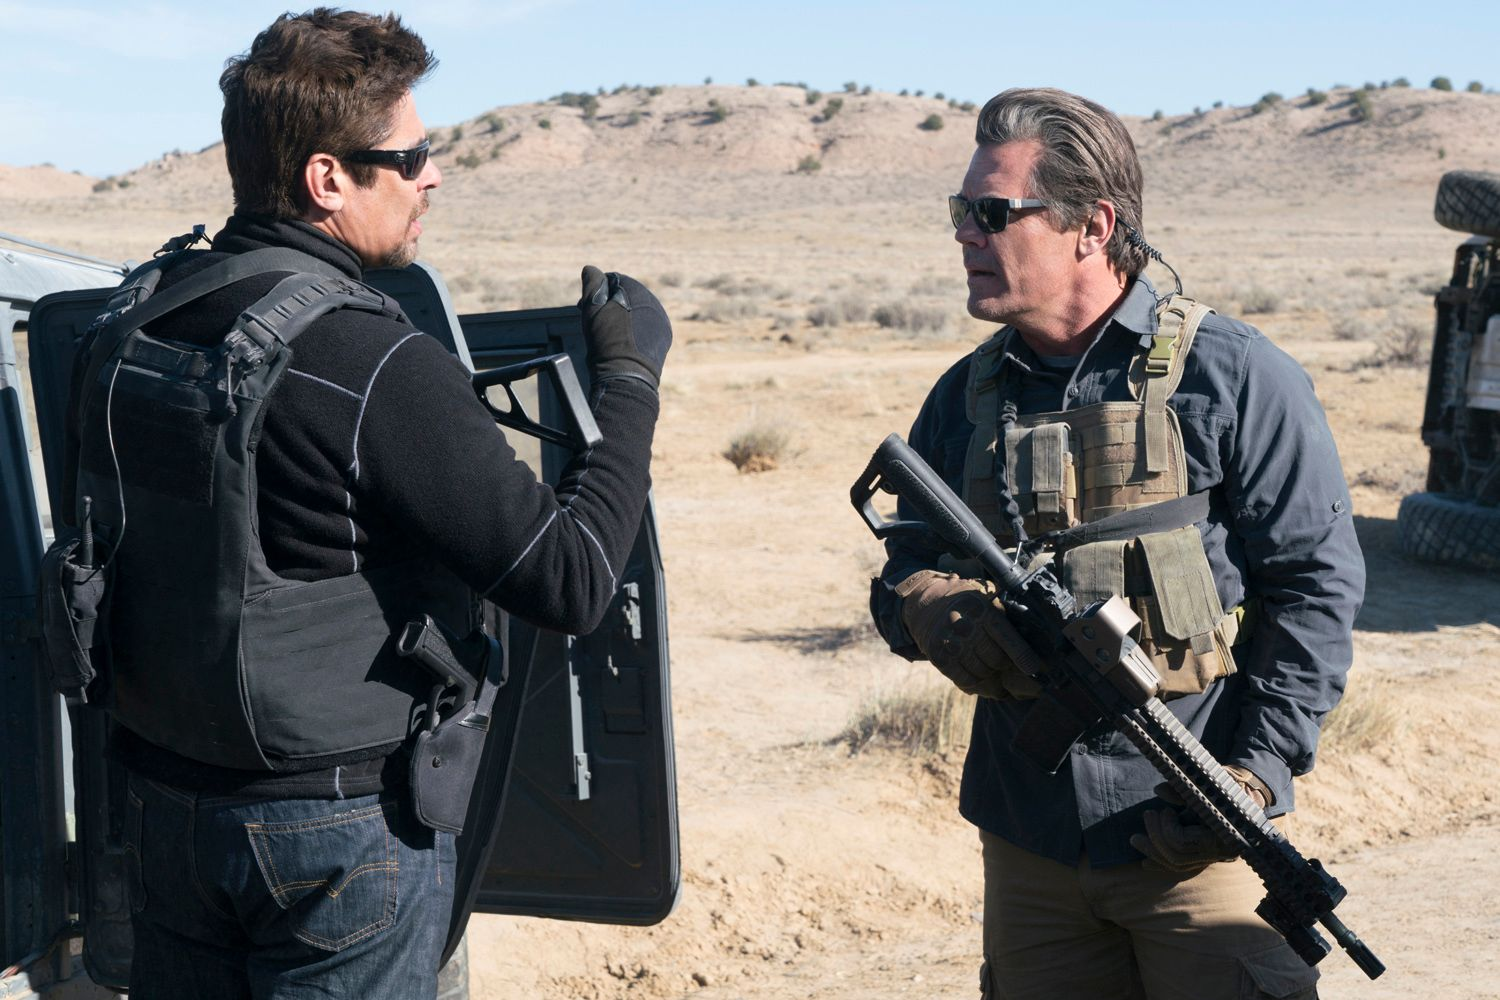 Trailer : Sicario: Day of the Soldado